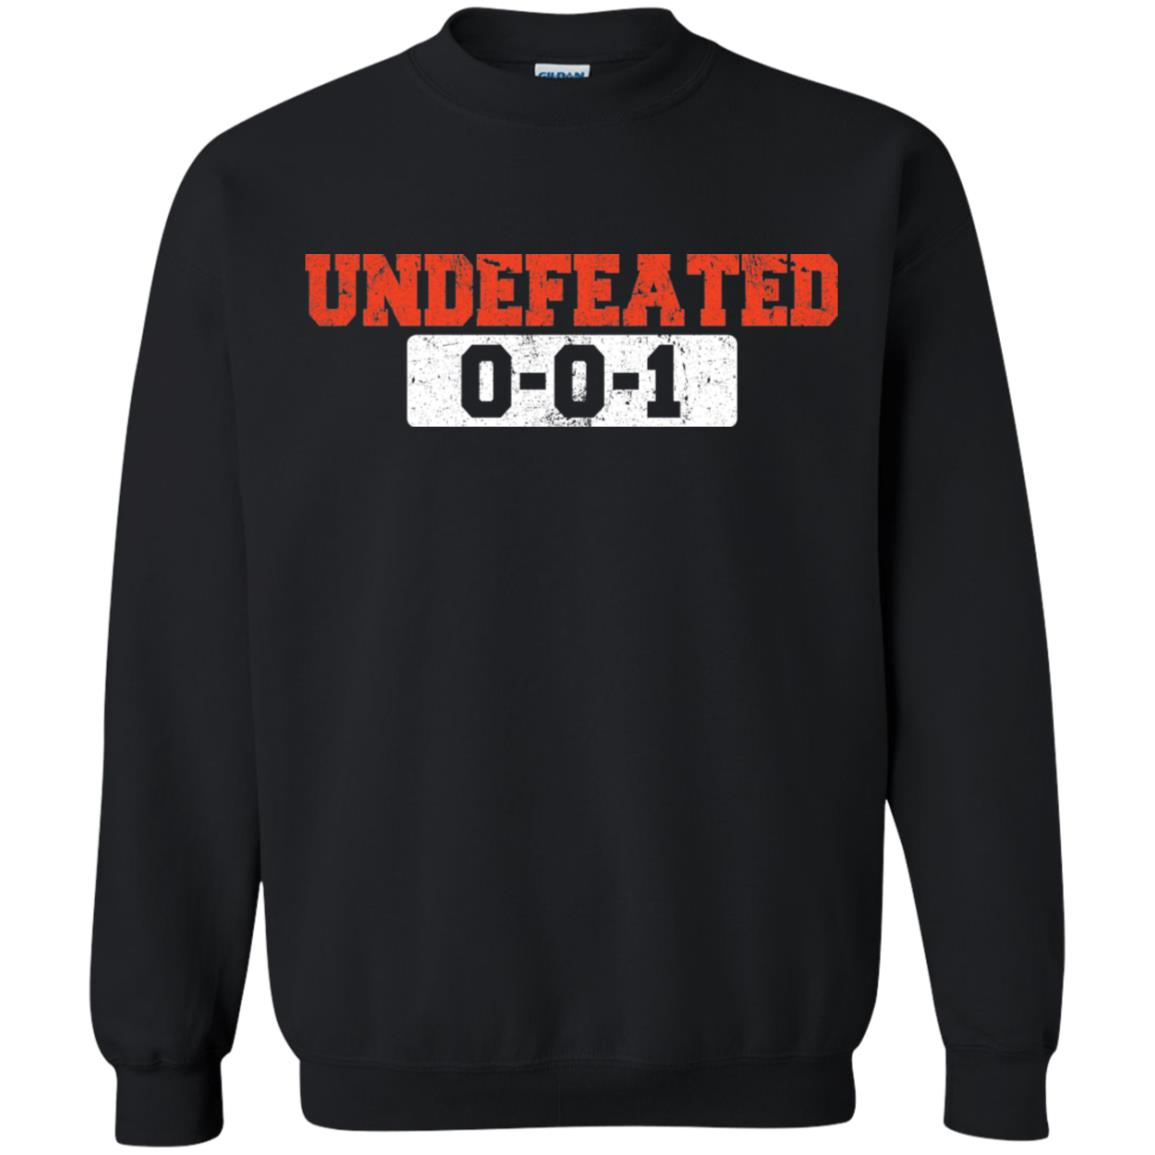 Undefeated 0-0-1